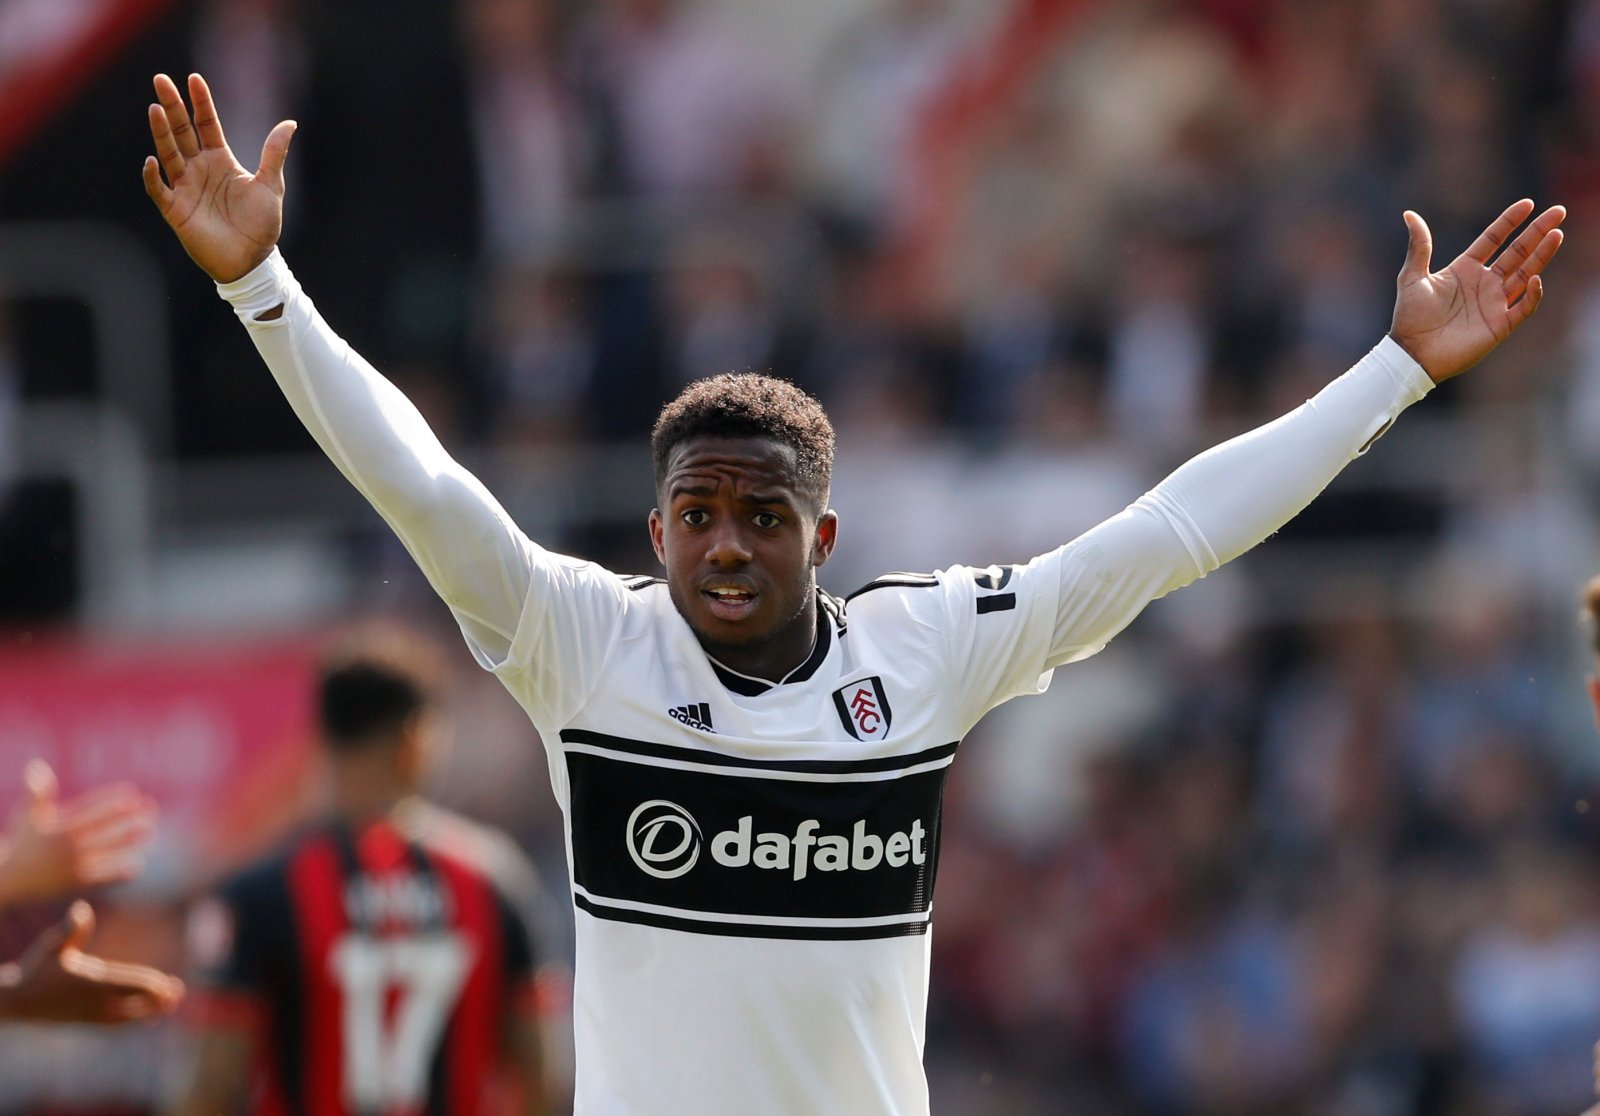 Liverpool: Reds urged to sign Ryan Sessegnon by former player